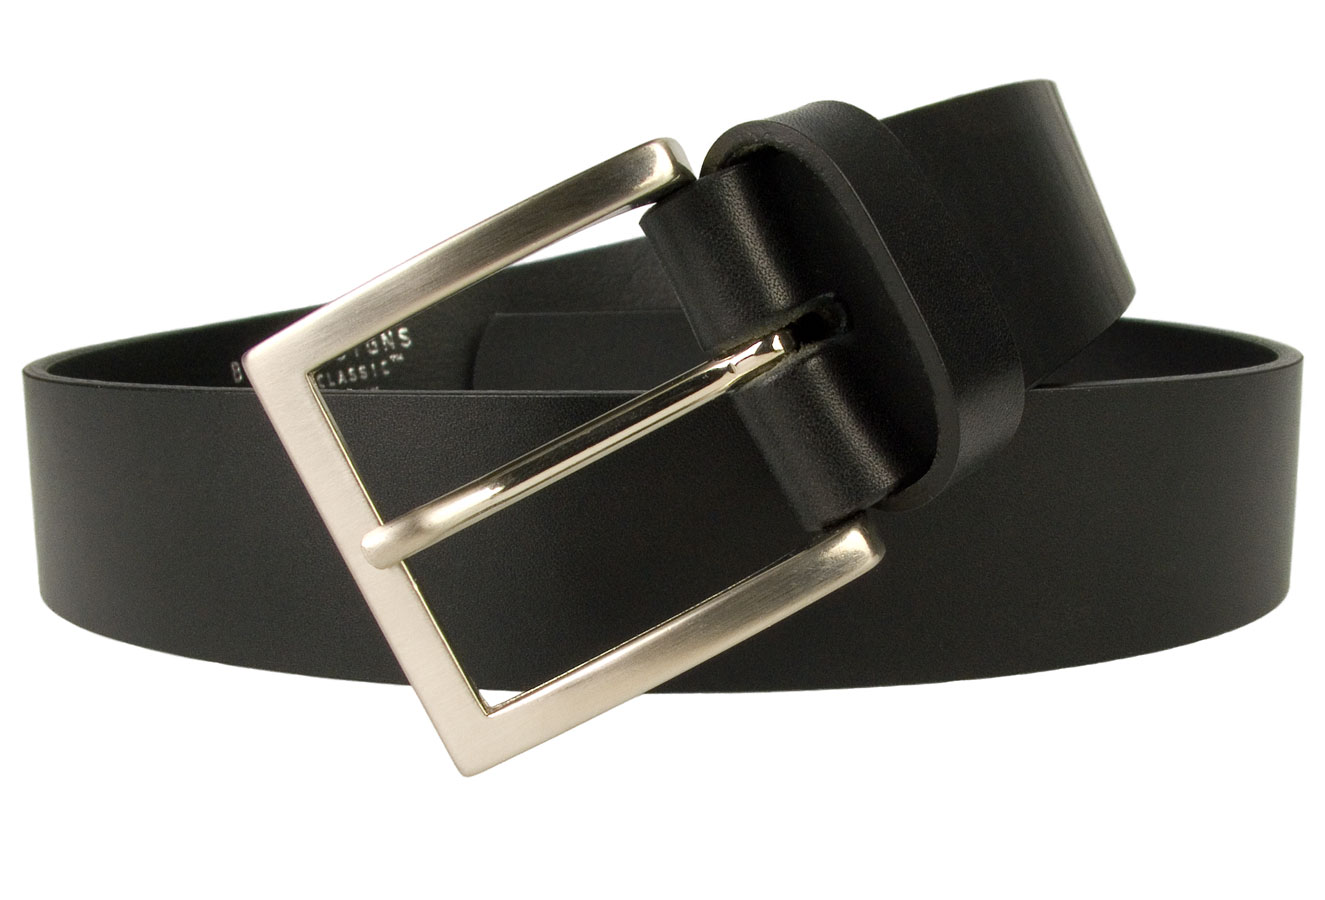 Mens High Quality Leather Jeans Belt 4cm Wide Made In UK by British Craftsmen